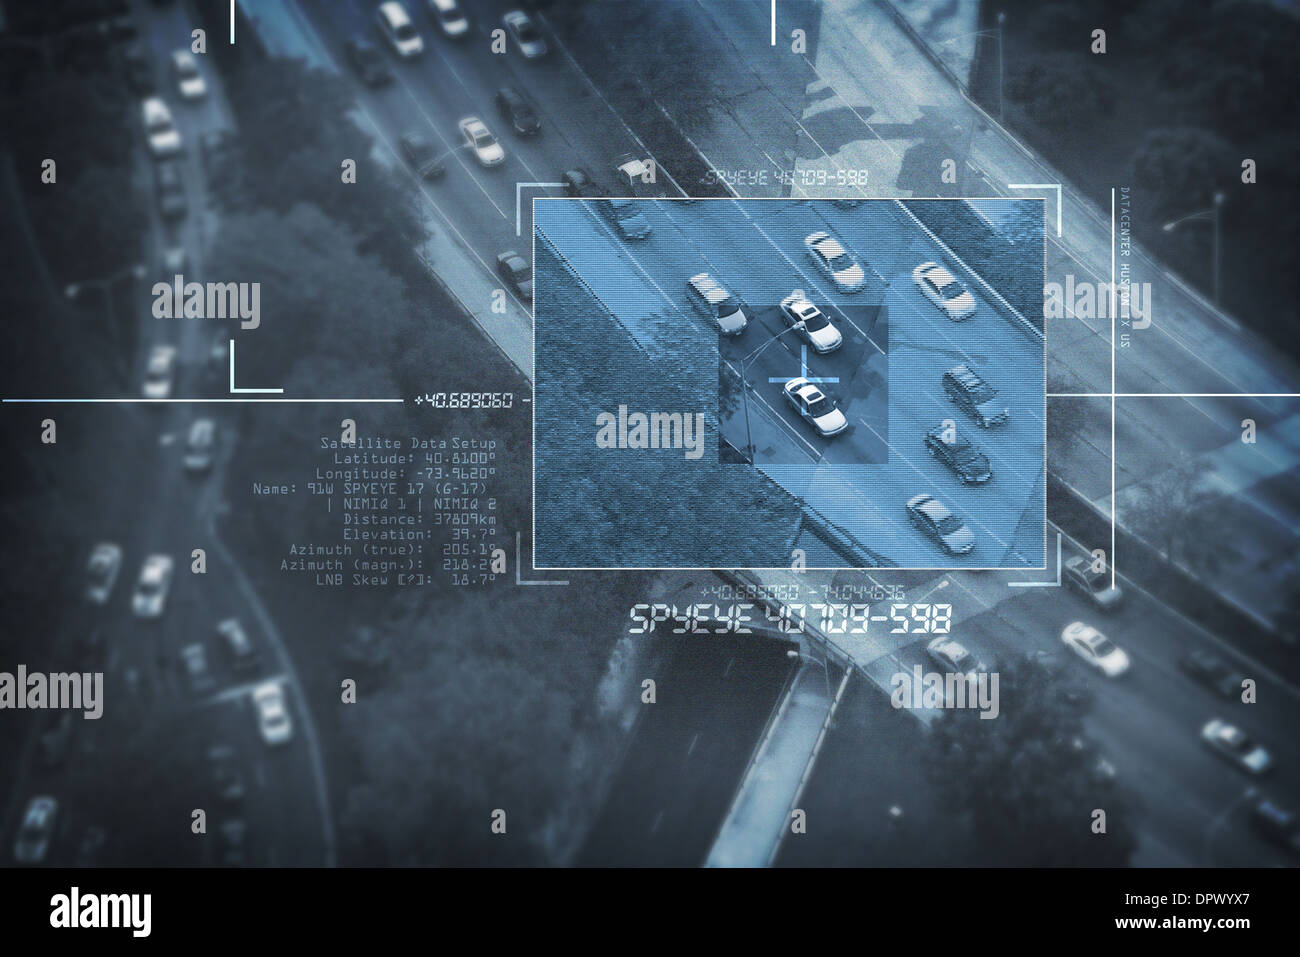 Spy Satellite Digital Bird Eye View - Search For Suspicious Car in Afternoon Commute. Digital Spy Targeting Theme. Surveillance - Stock Image